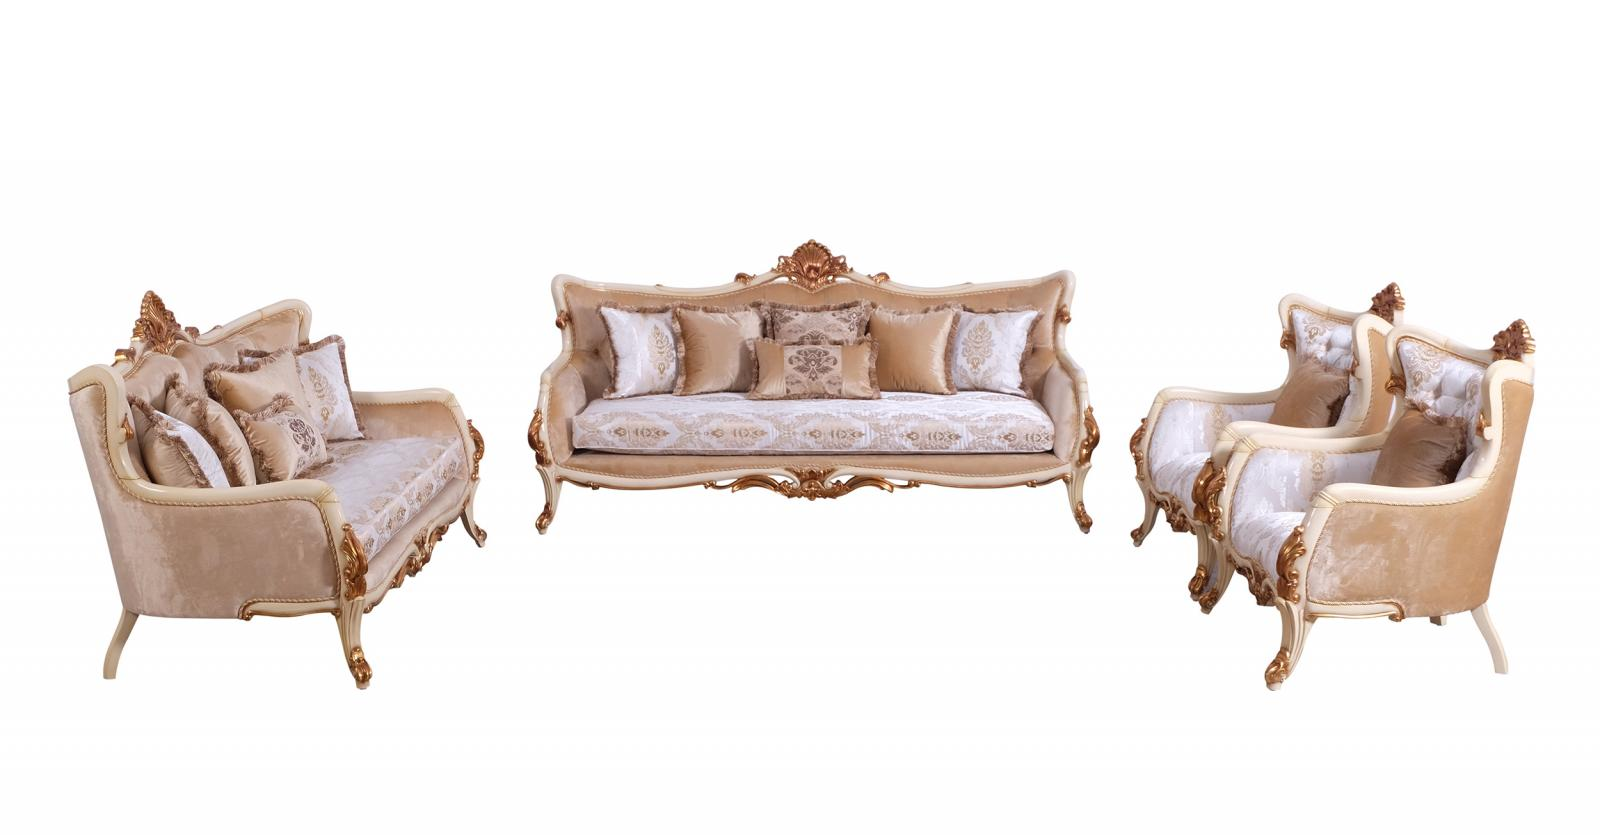 Classic  Traditional Gold  Antique  Pearl Wood  Solid Hardwood and Fabric Sofa Set EUROPEAN FURNITURE 47072-S-Set-4